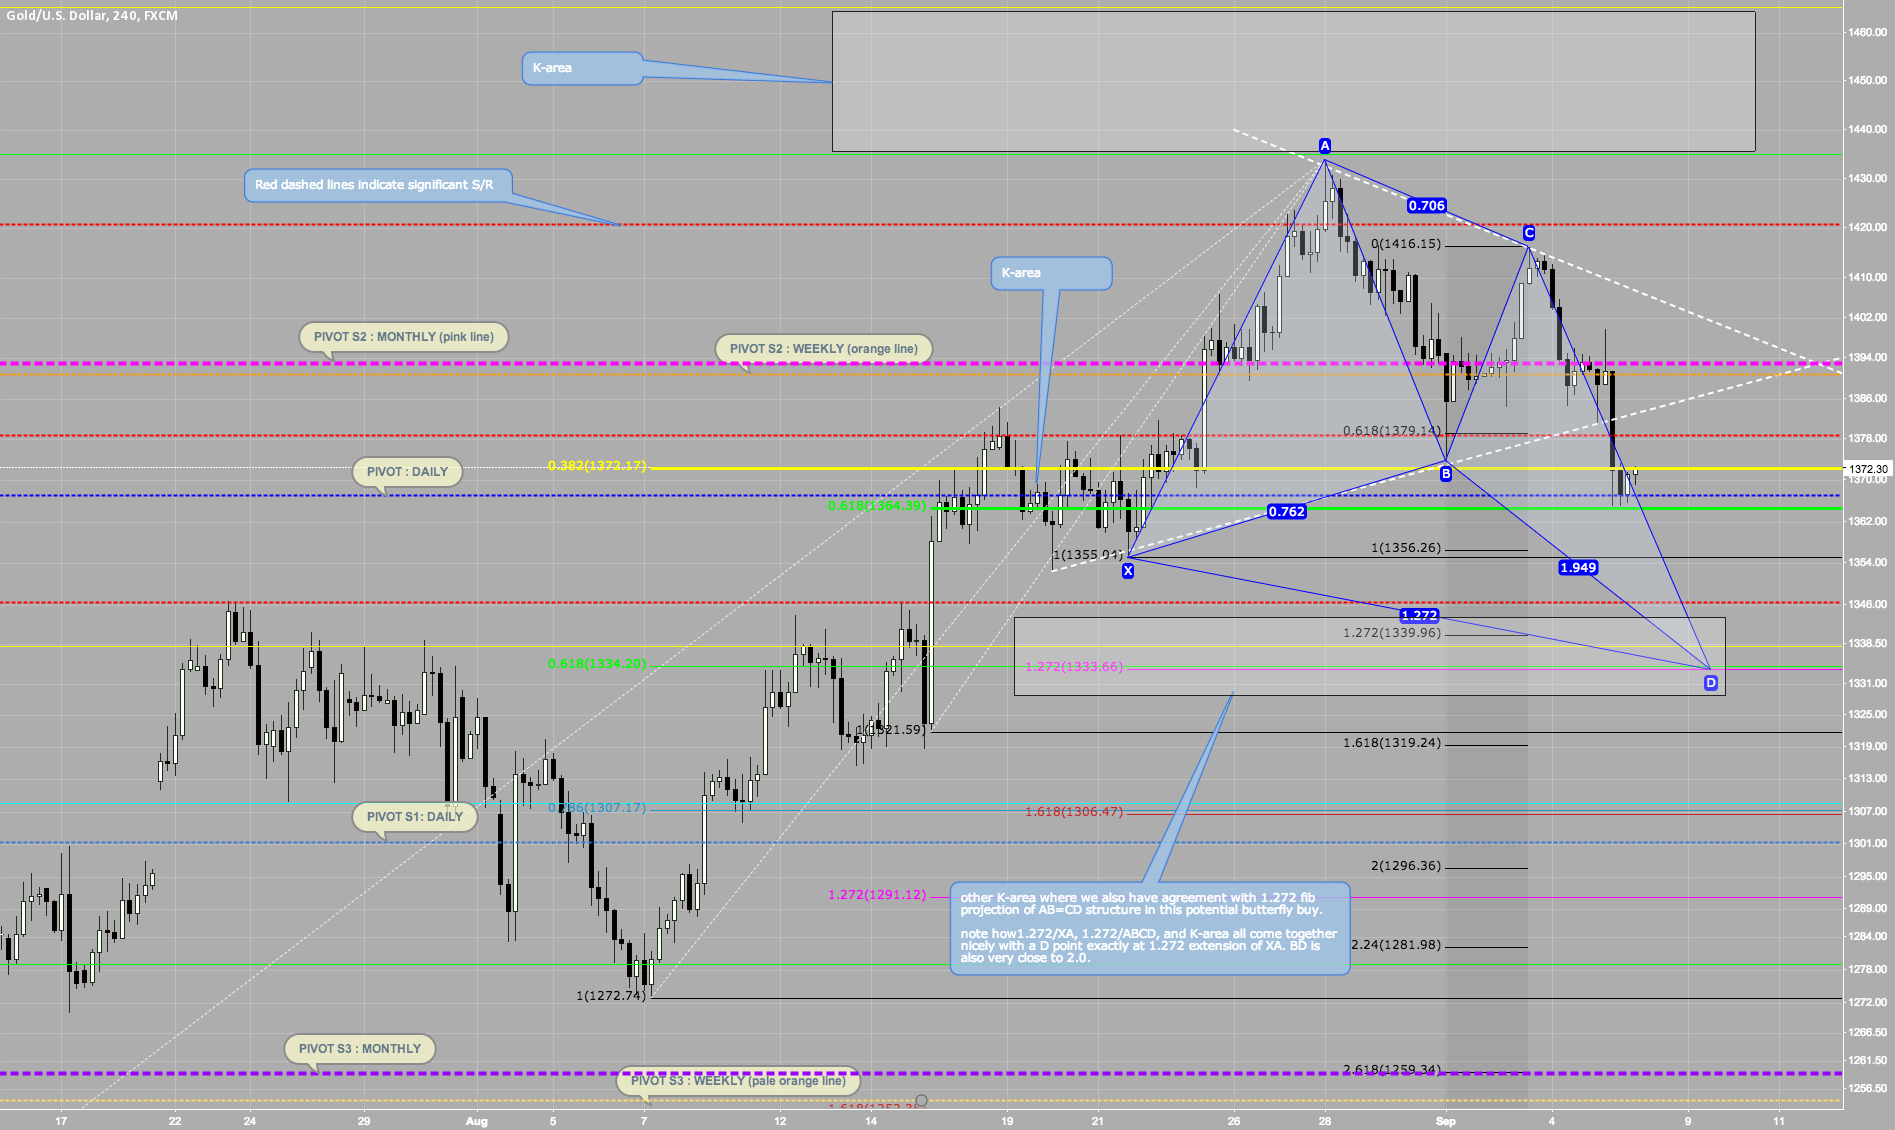 Potential Butterfly BUY on H4 with K-area and agreement zones